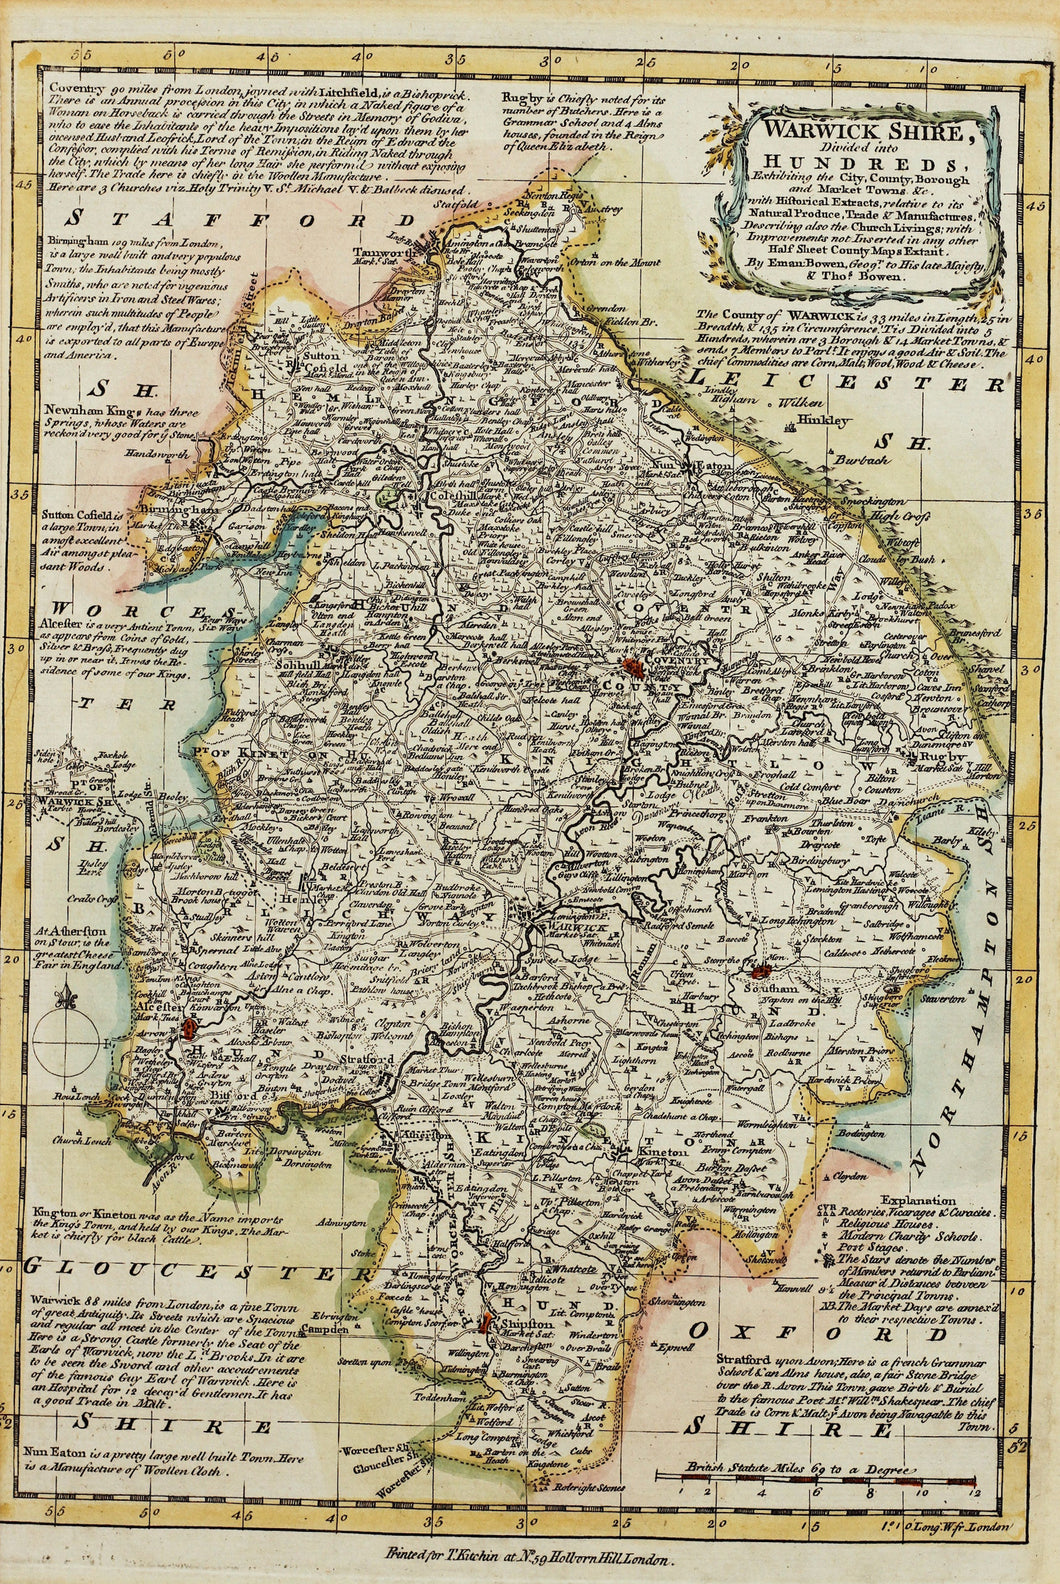 Warwickshire Divided into Hundreds - Antique Map by Bowen circa 1767